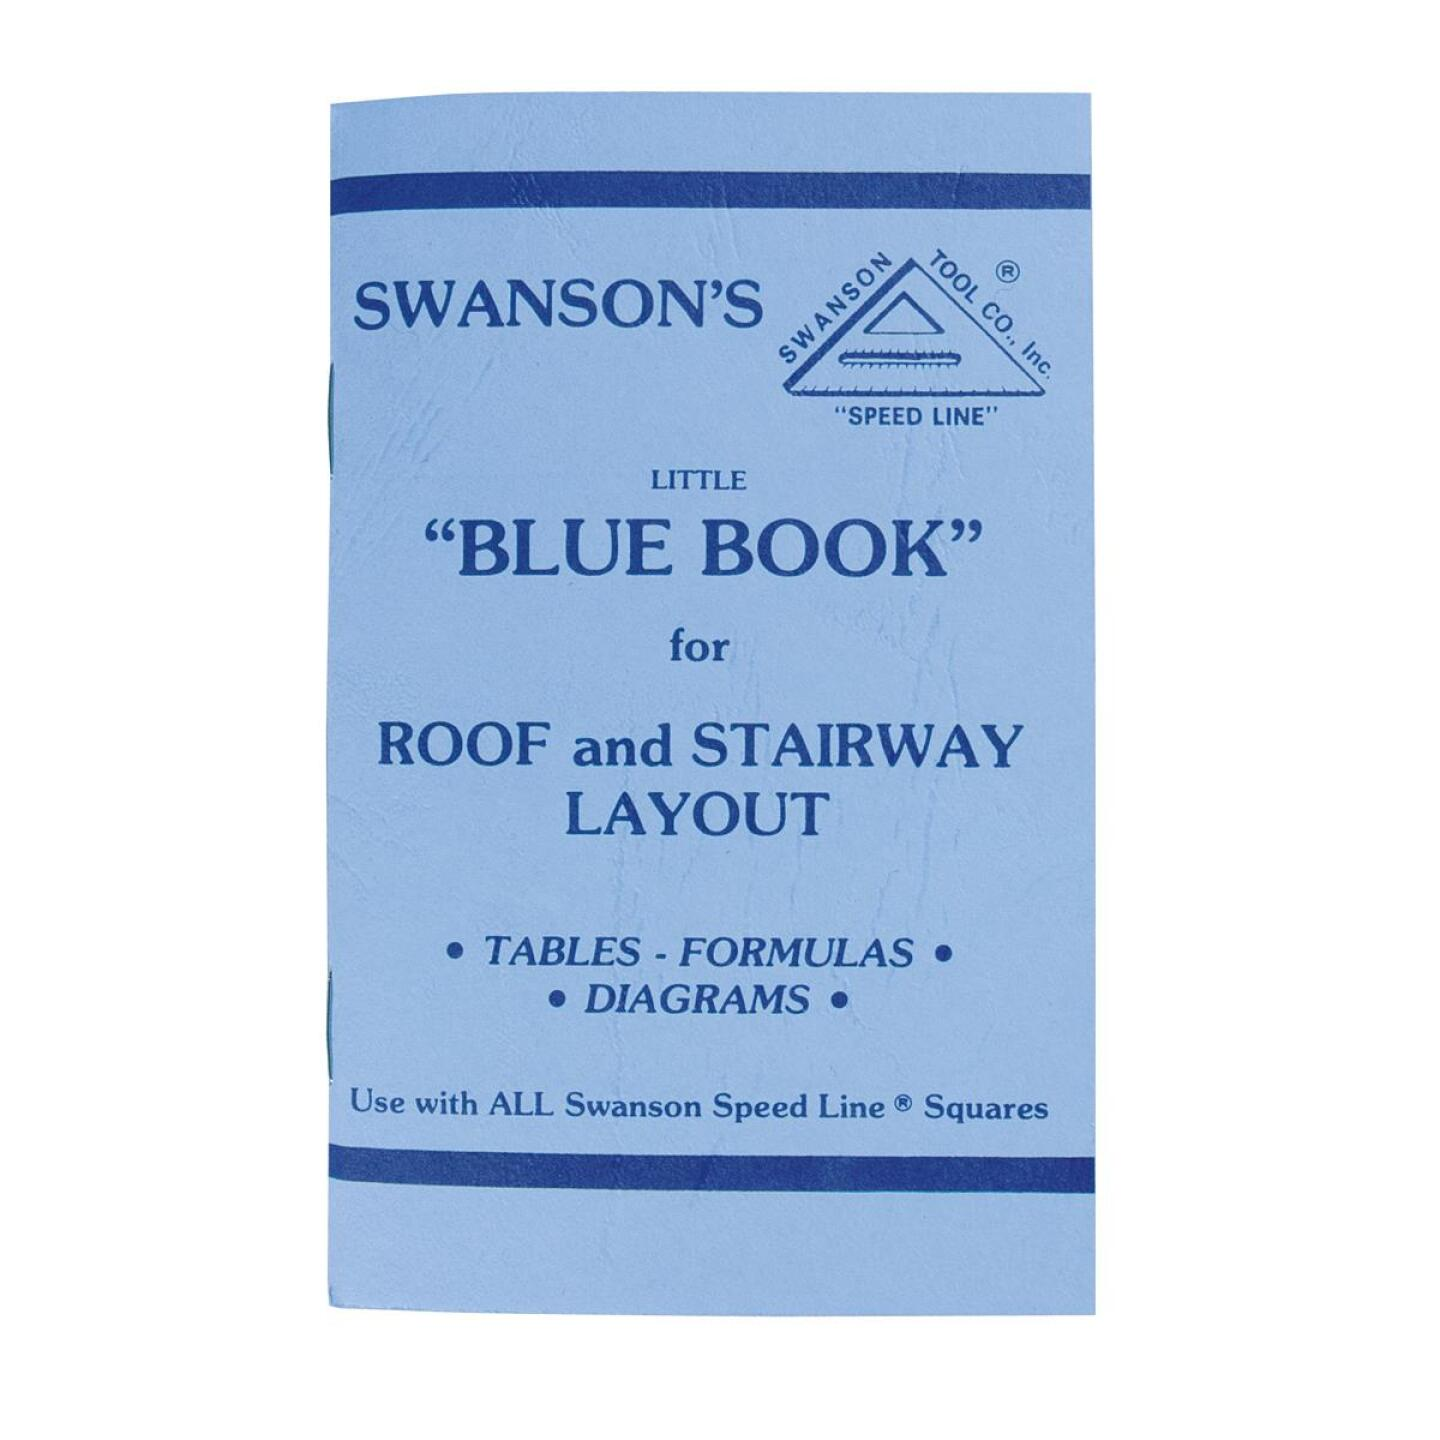 Swanson Rafter Square Book Image 1